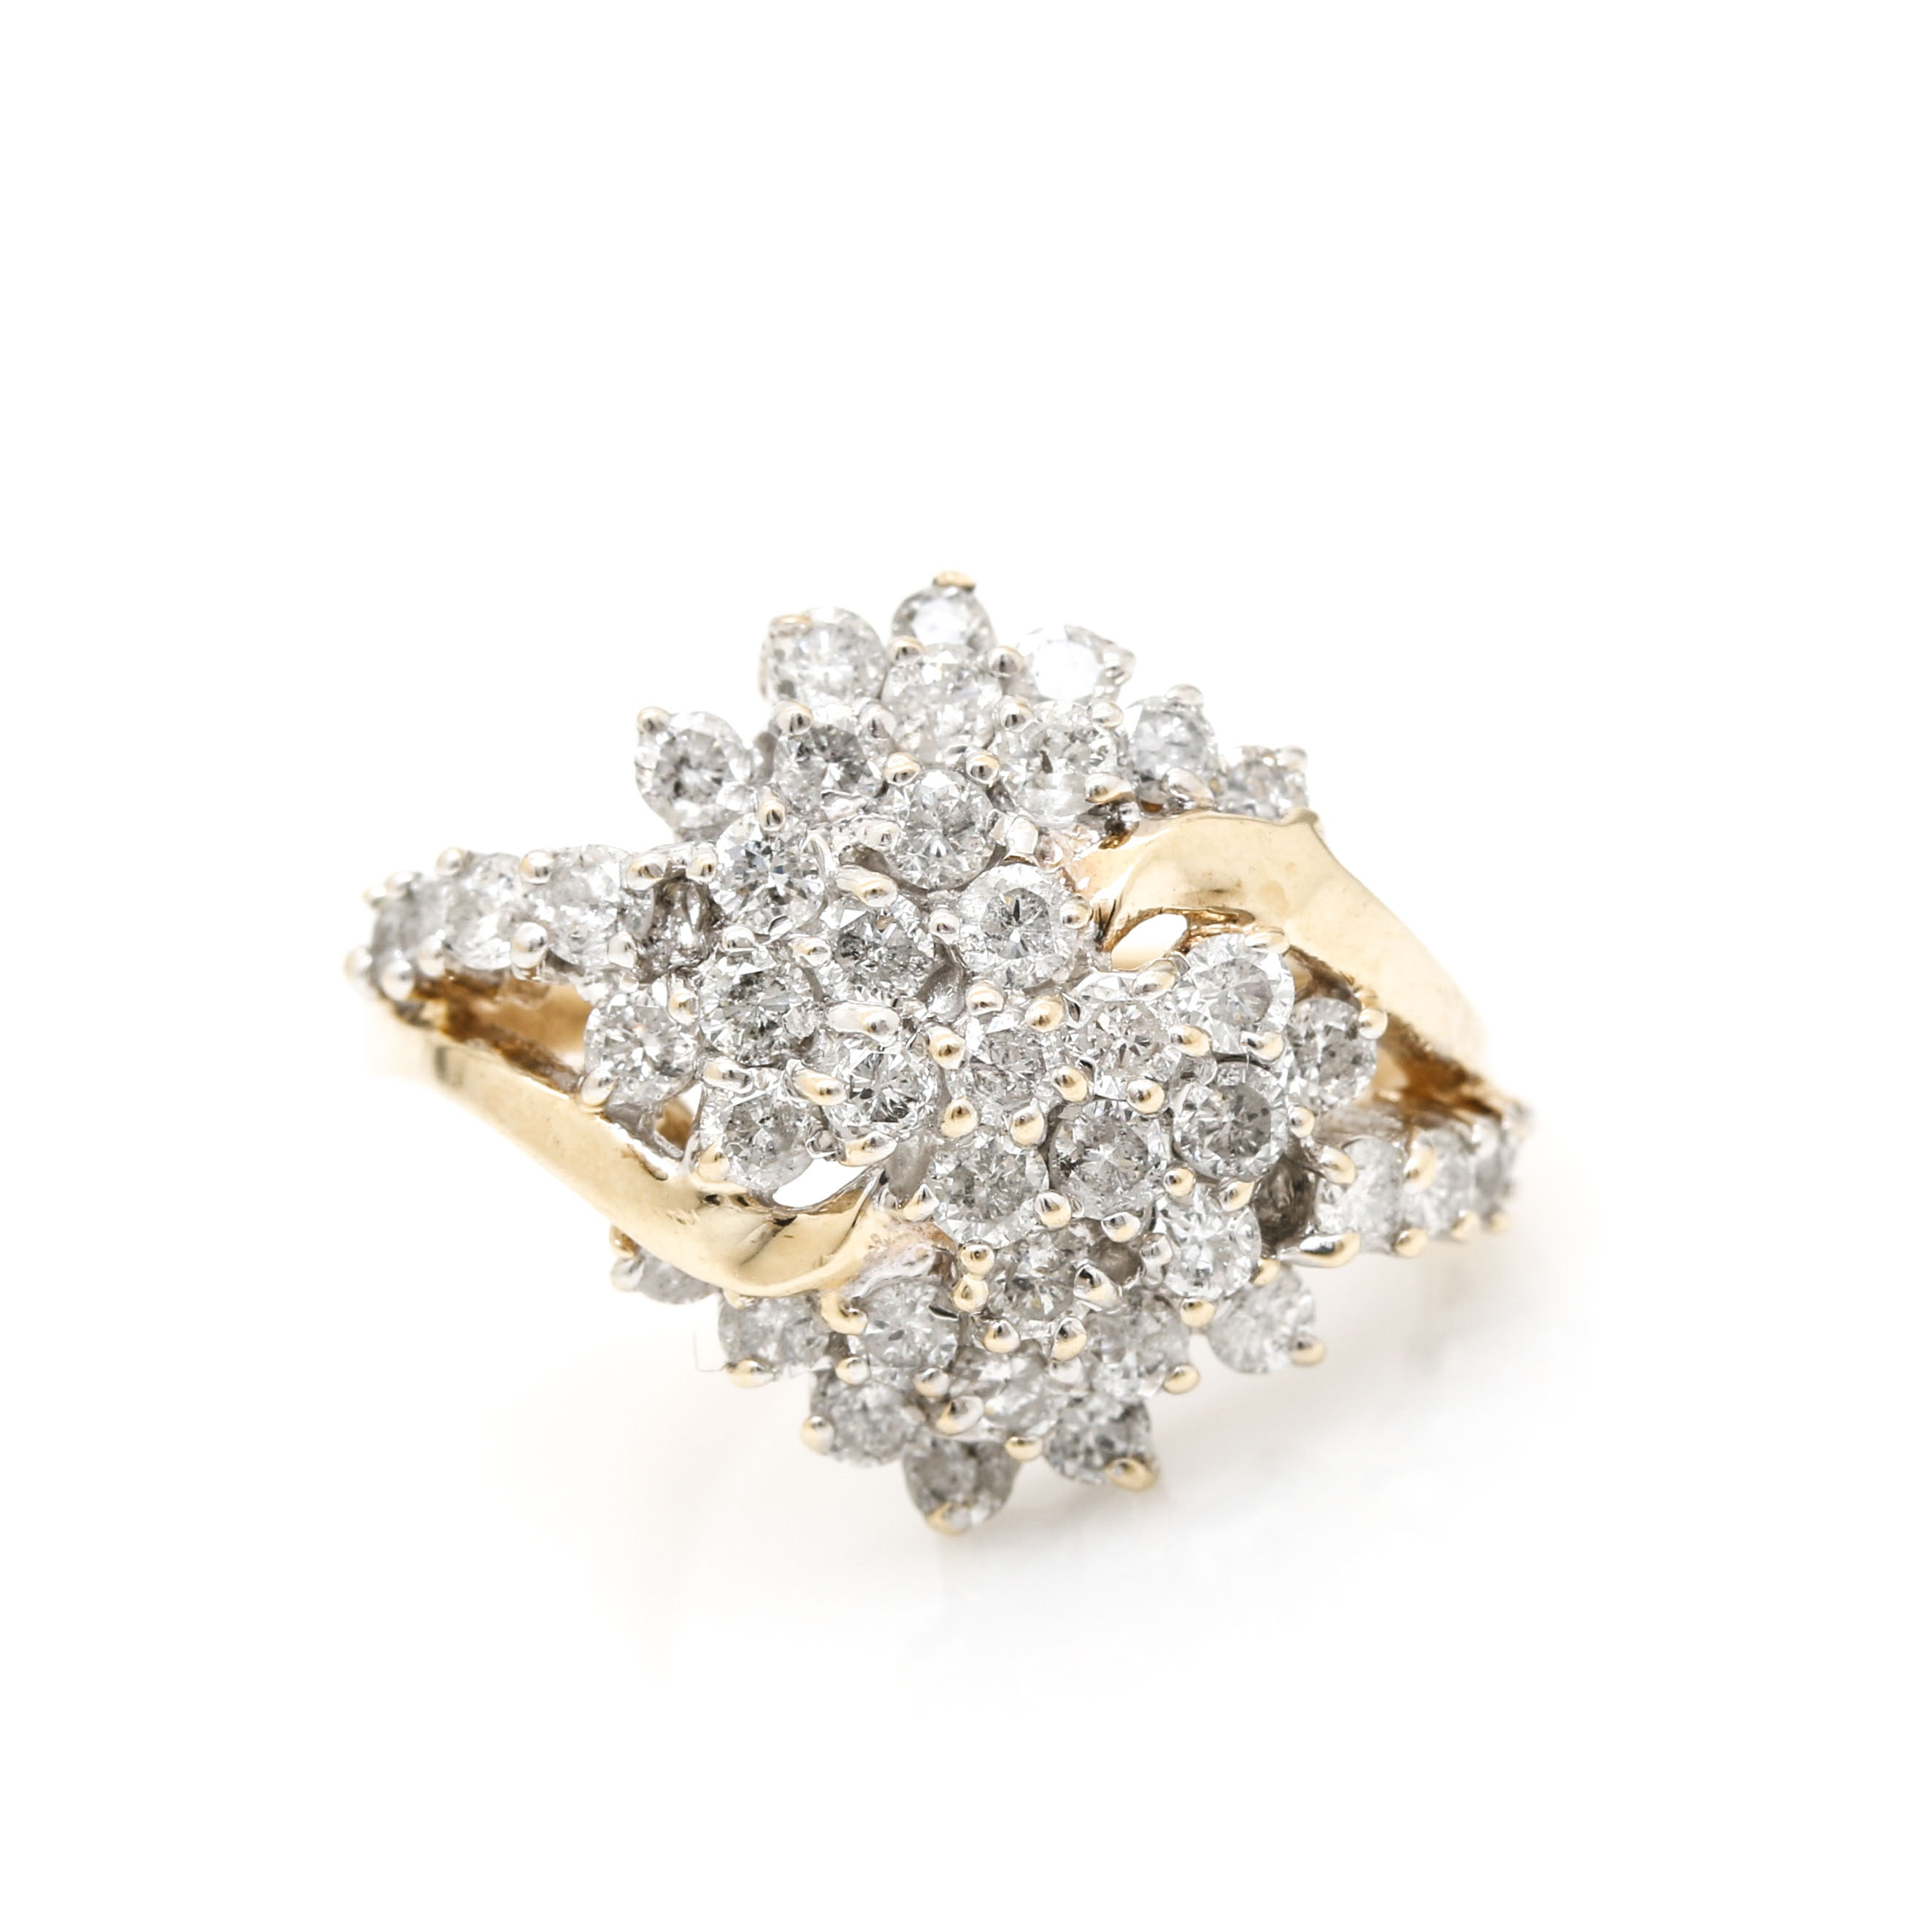 10K Yellow Gold 1.50 CTW Diamond Cluster Ring